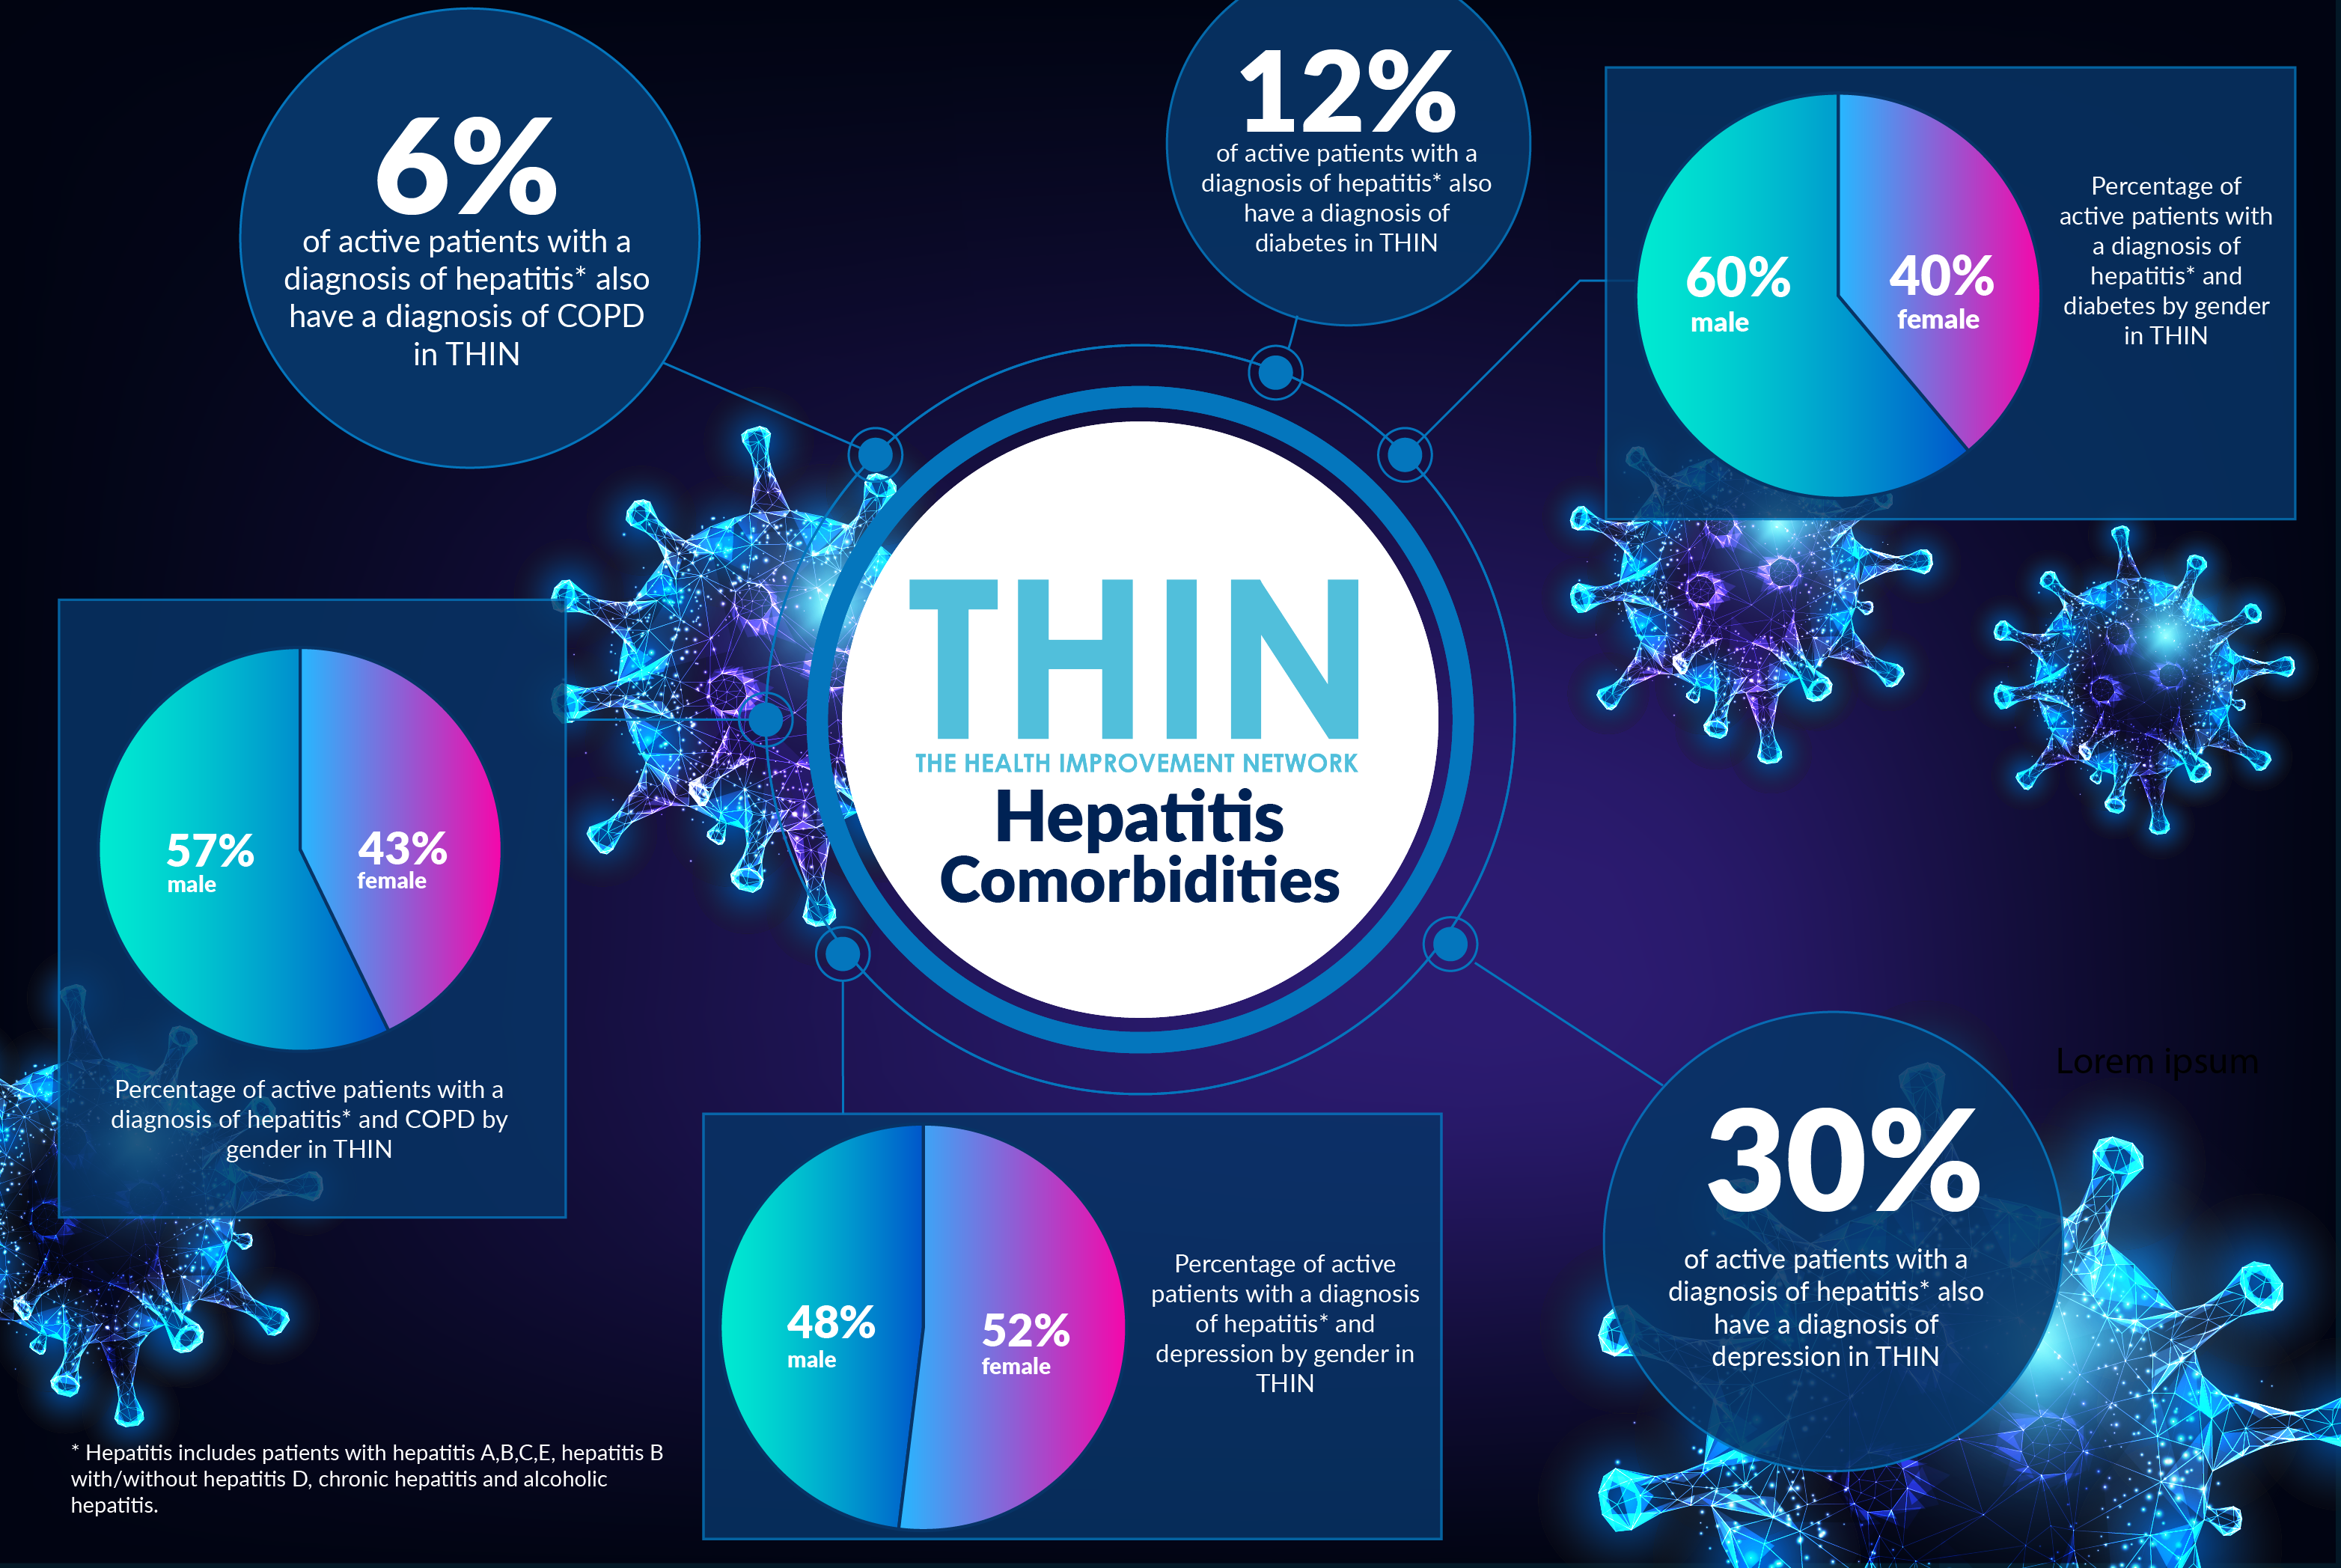 thin_hepatitis2-02